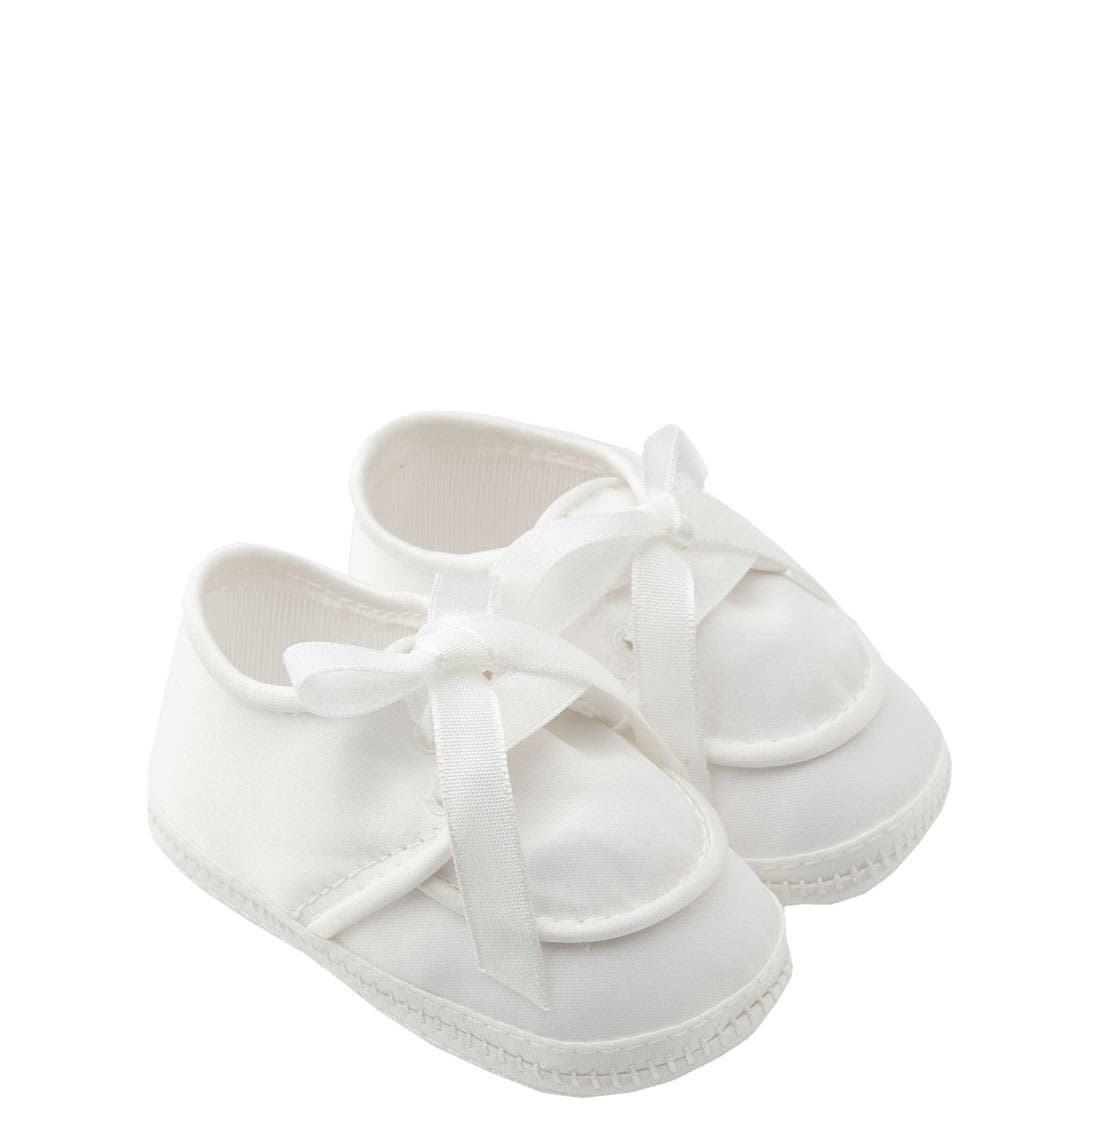 Main Image - Designer's Touch 'Michael' Crib Shoe (Baby)